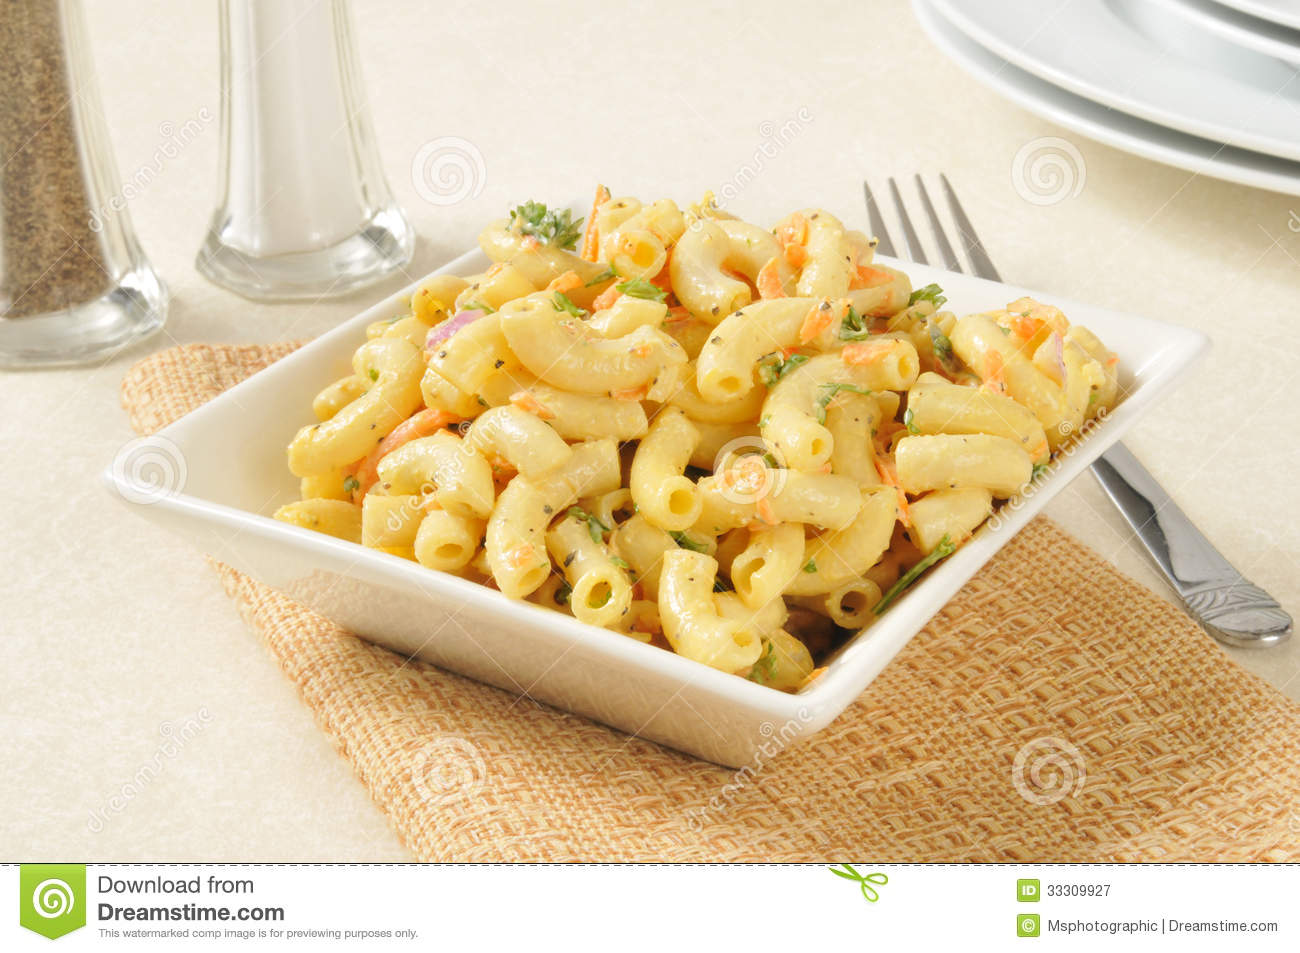 Macaroni Salad Royalty Free Stock Photography   Image  33309927